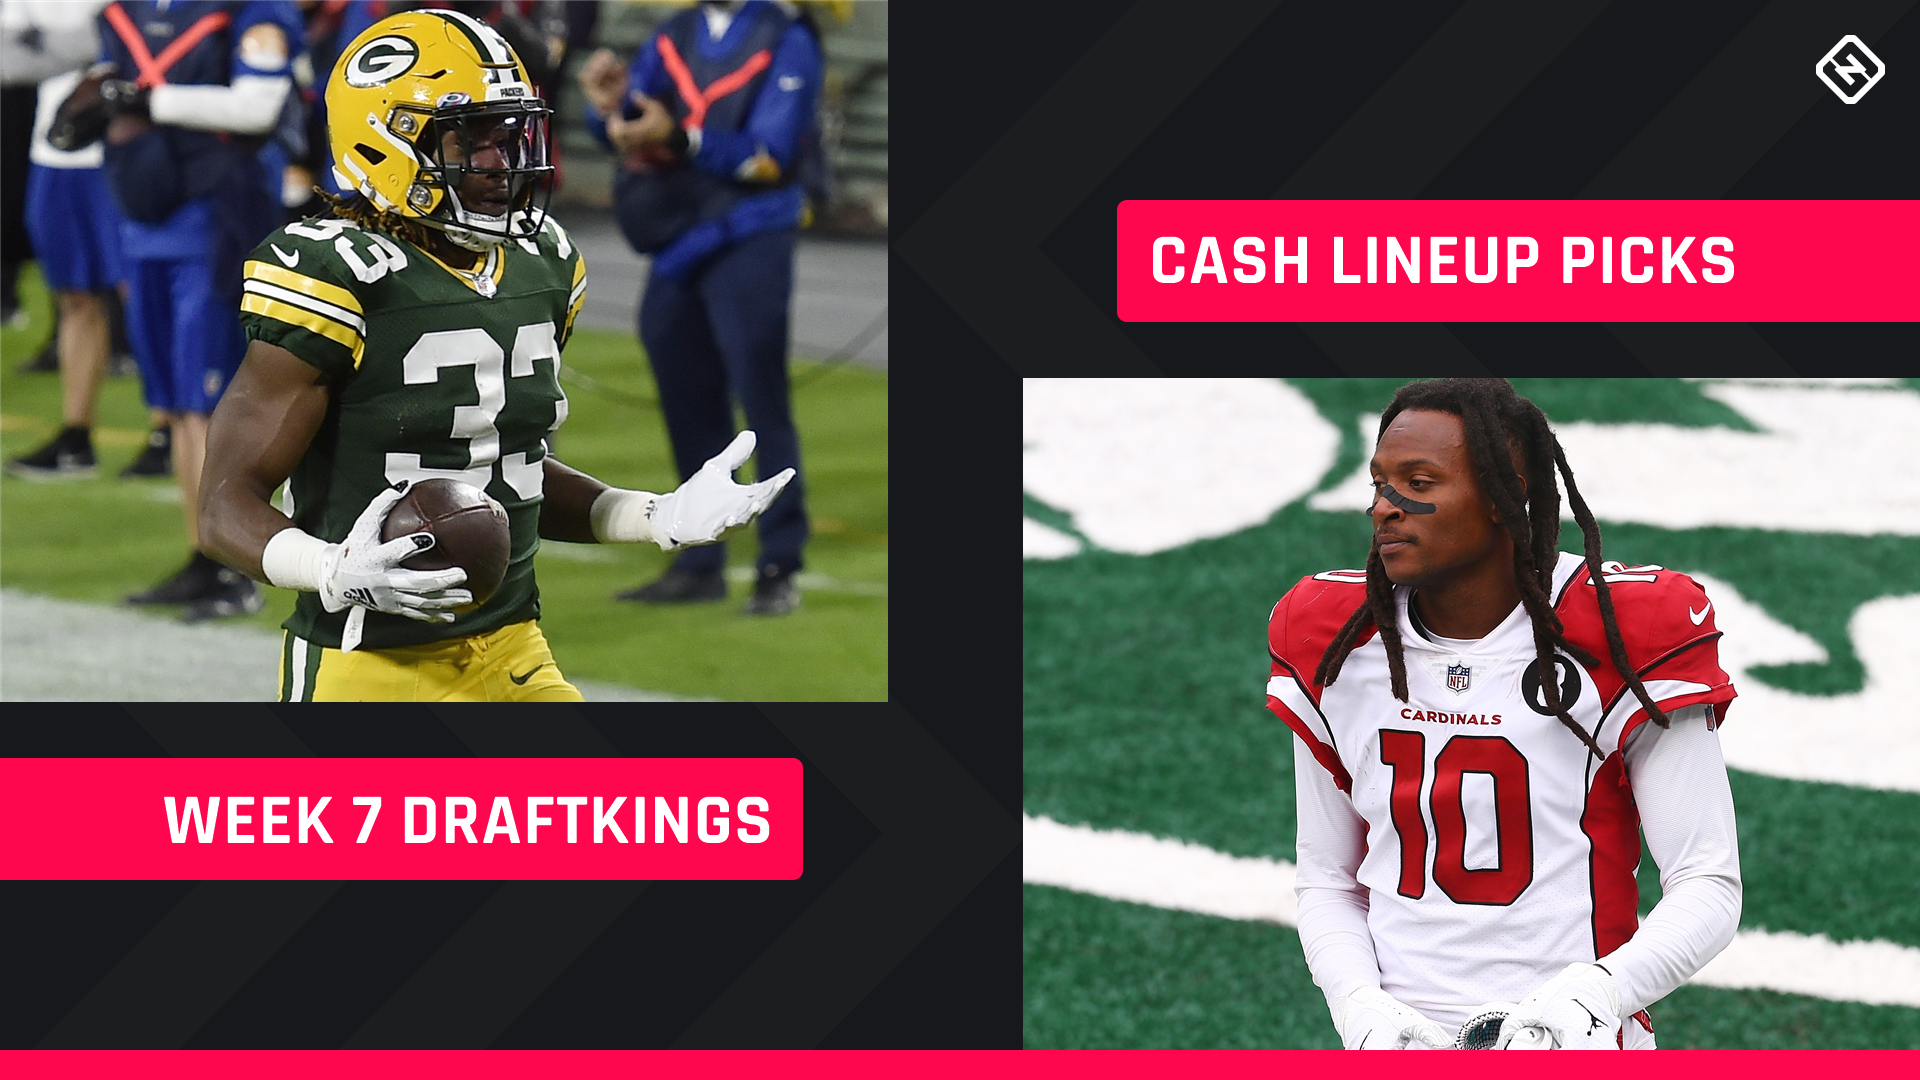 Week 7 DraftKings Picks: NFL DFS lineup advice for daily fantasy football cash games - sporting news